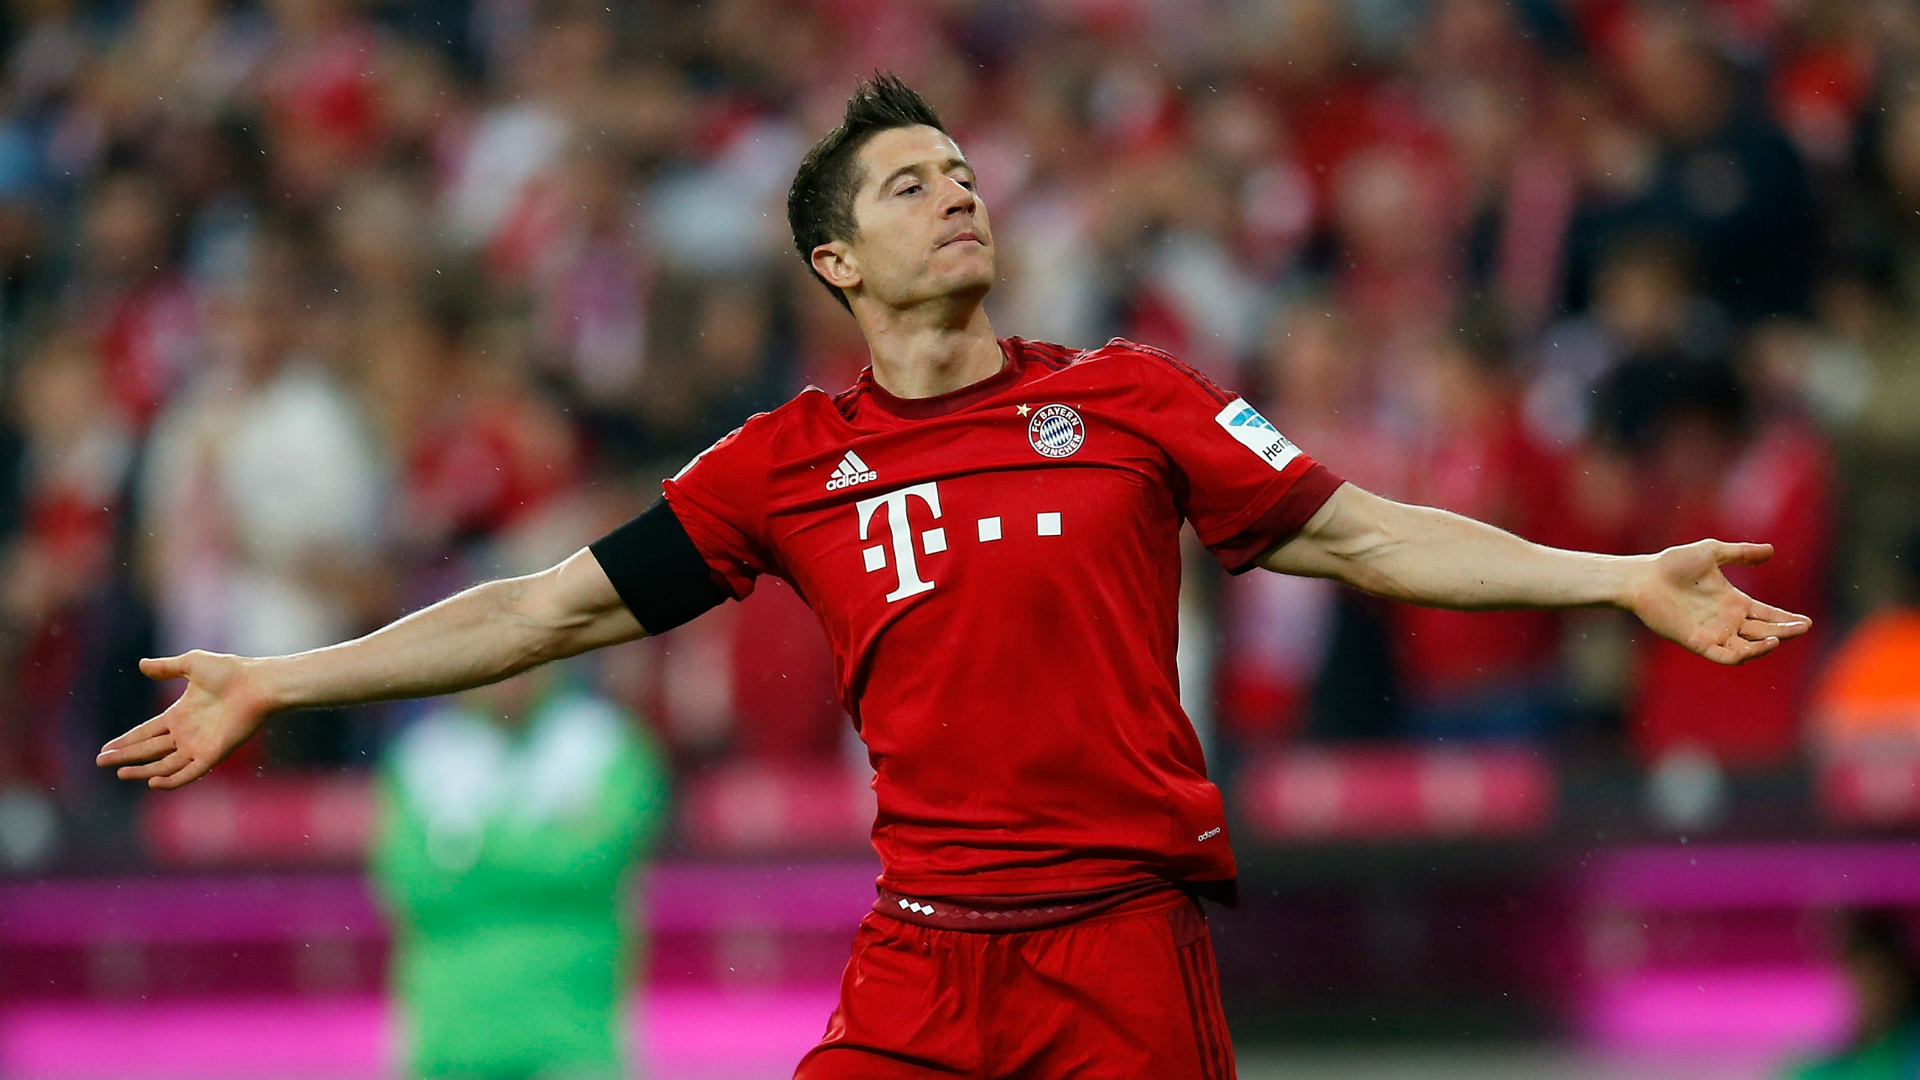 Five years on: The story behind Robert Lewandowski's five goals in nine minutes